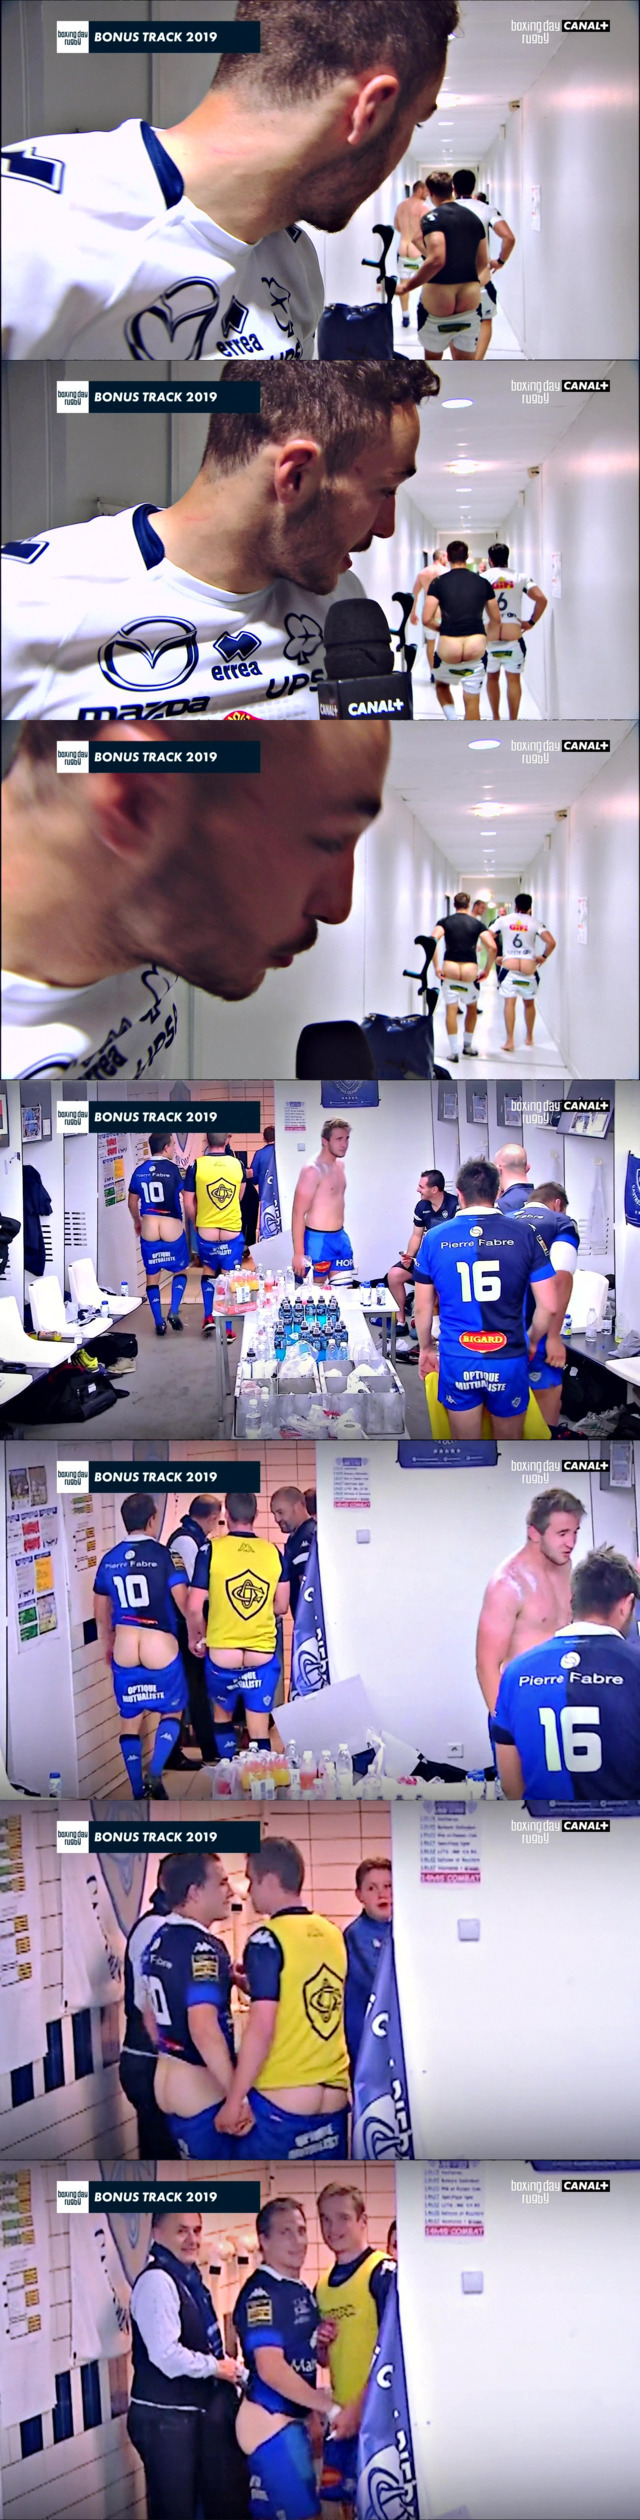 rugby players showing off ass in locker room